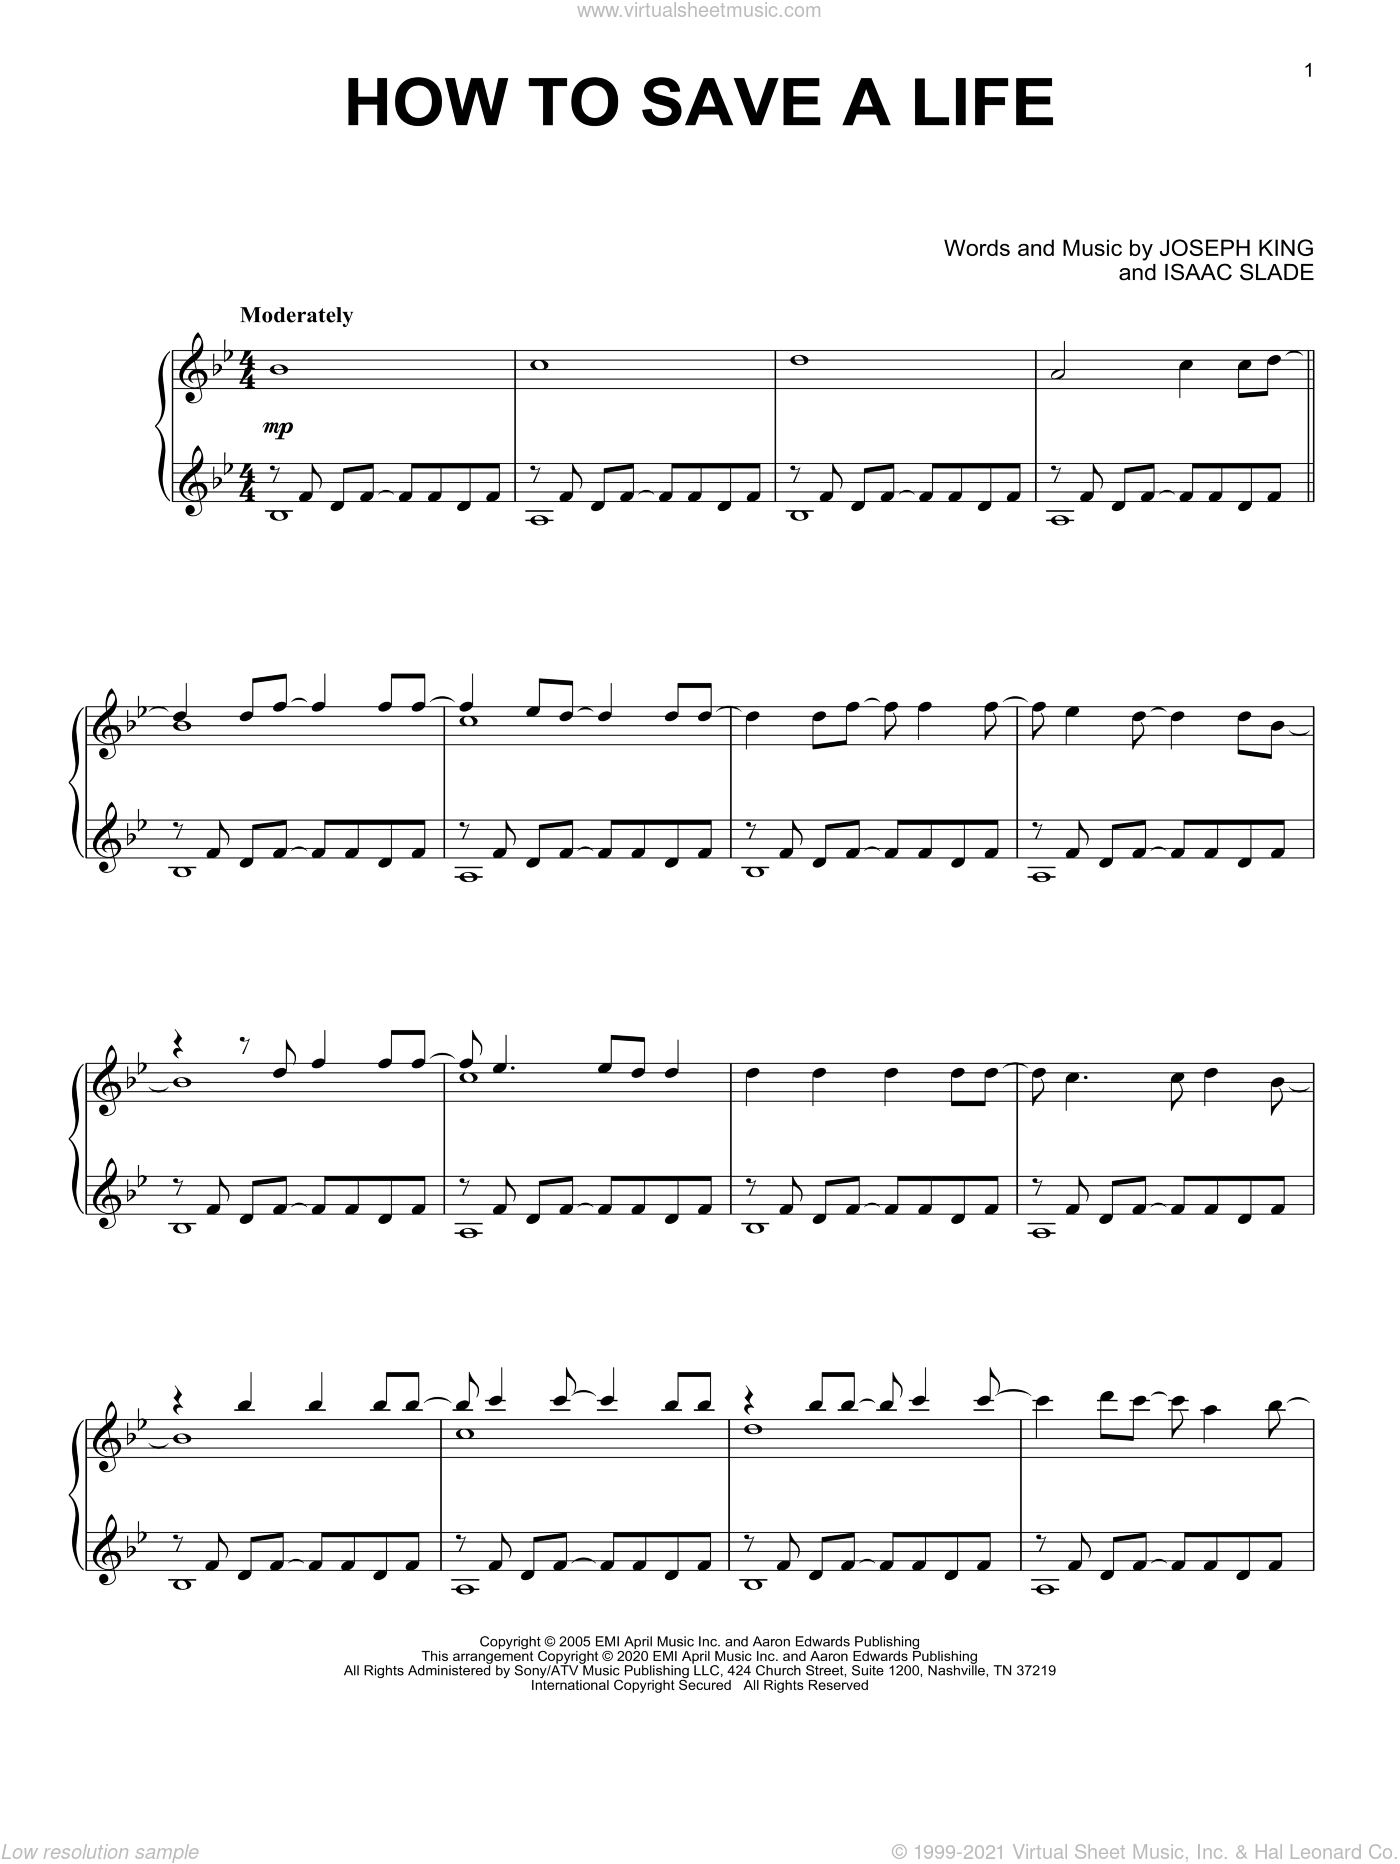 How To Save A Life, (intermediate) sheet music for piano solo by The Fray, Isaac Slade and Joseph King, intermediate skill level